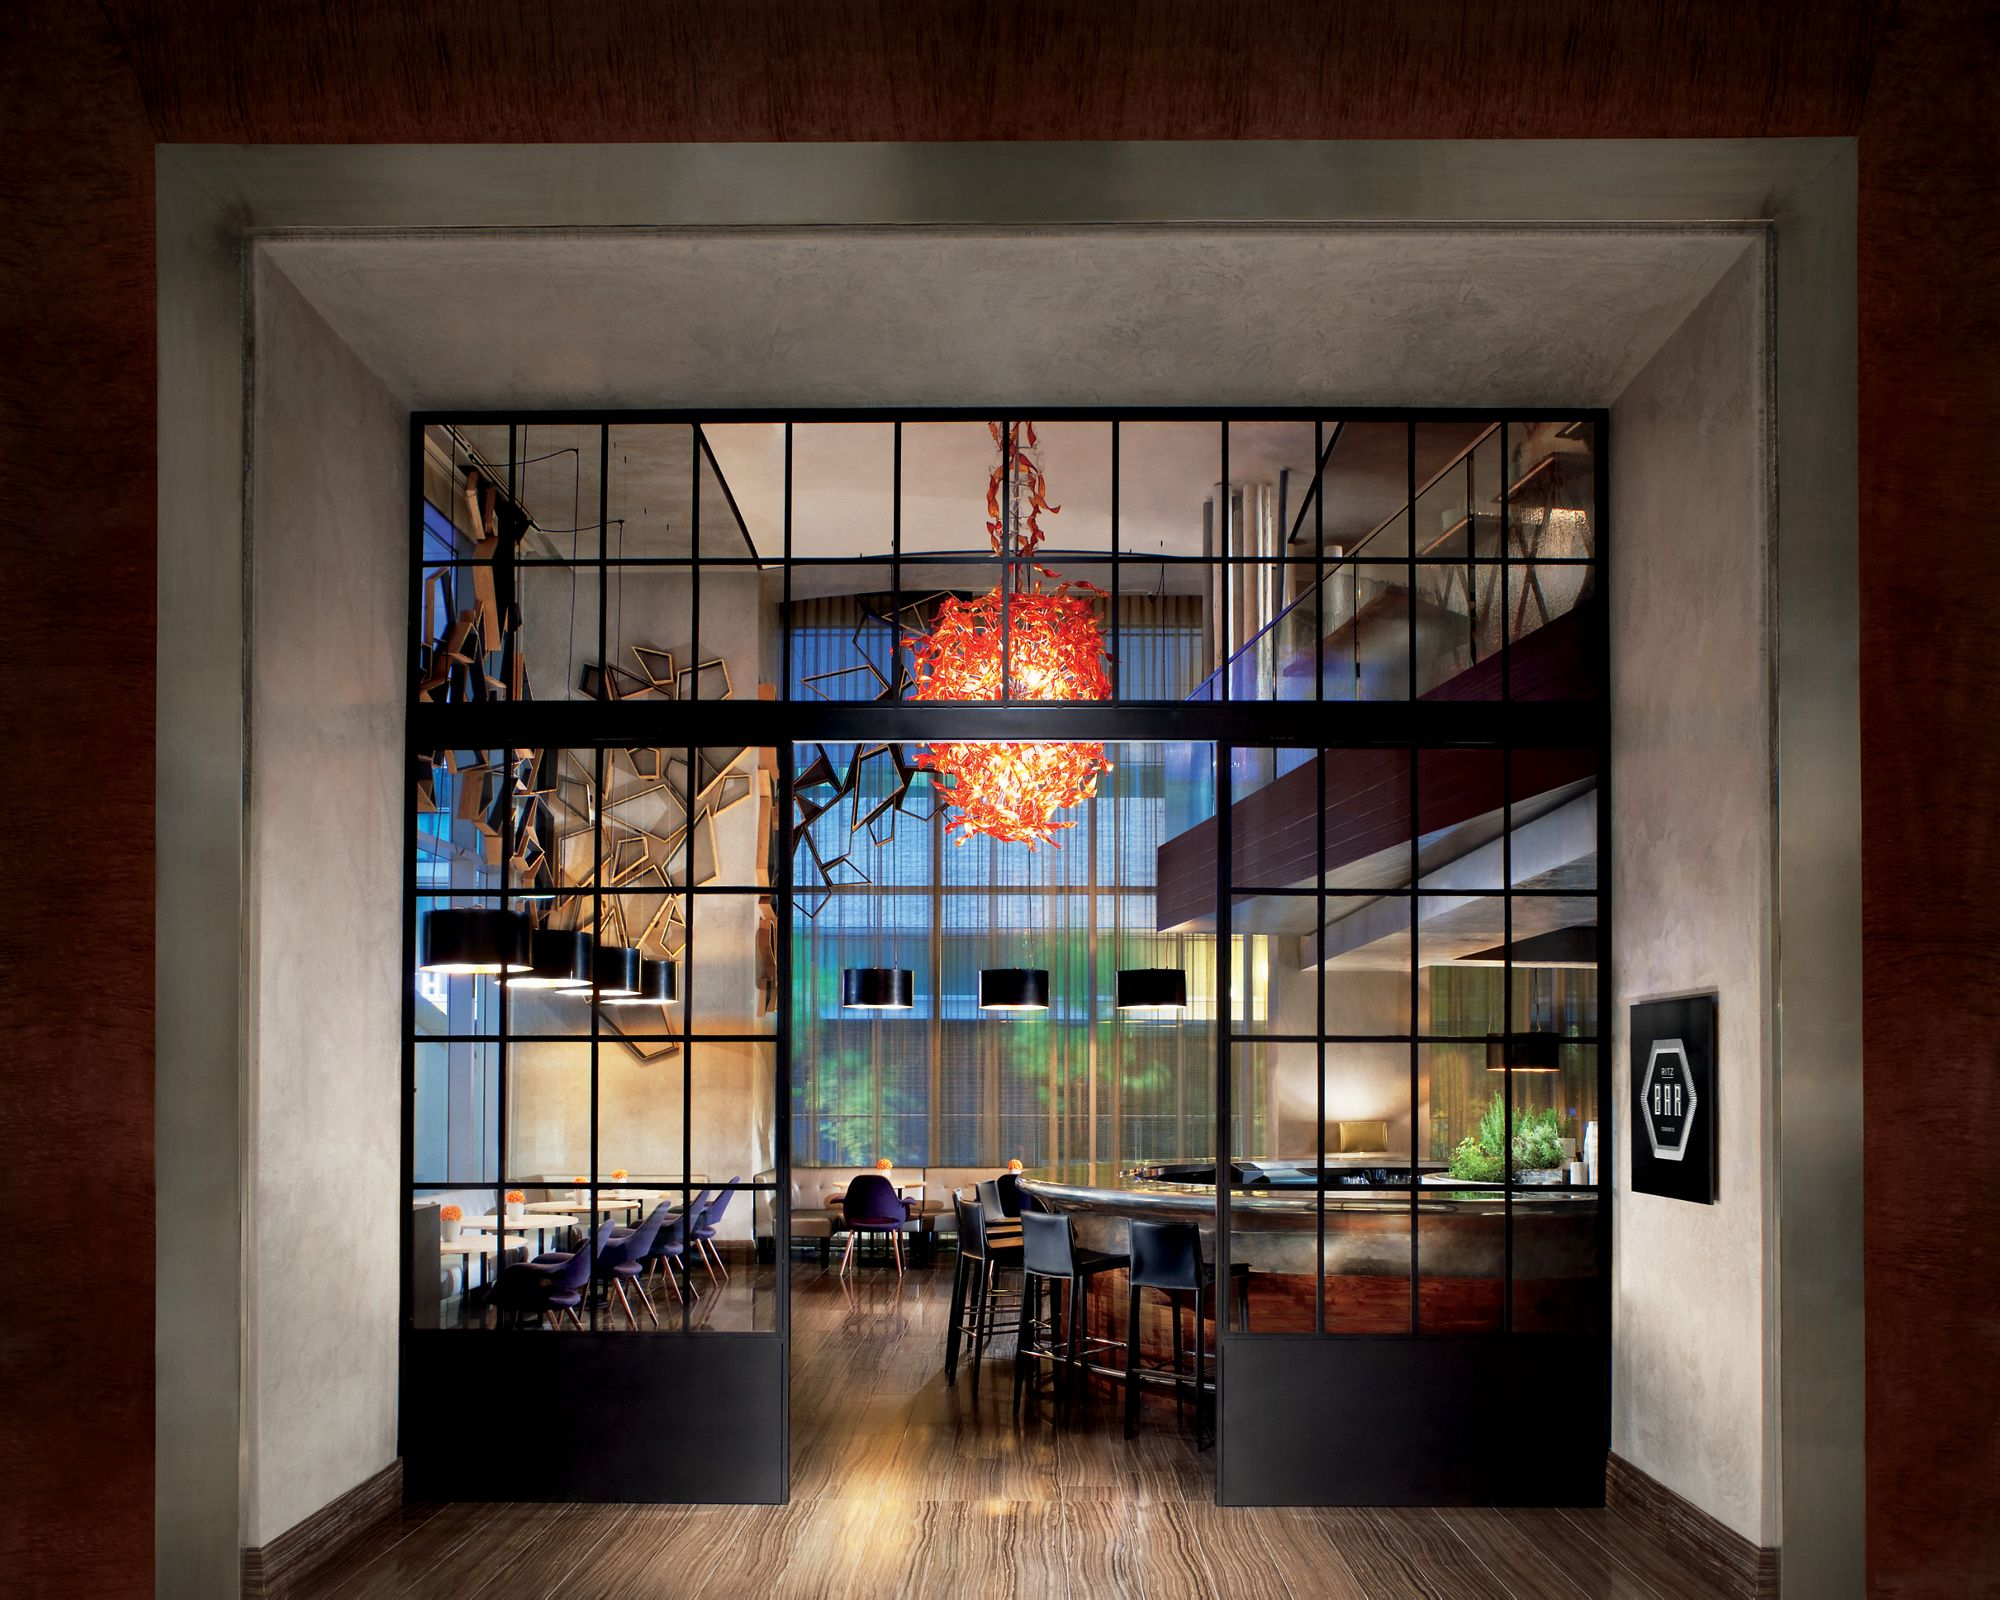 View through a glass wall of a two-level dining room with a bar and sculptural chandelier